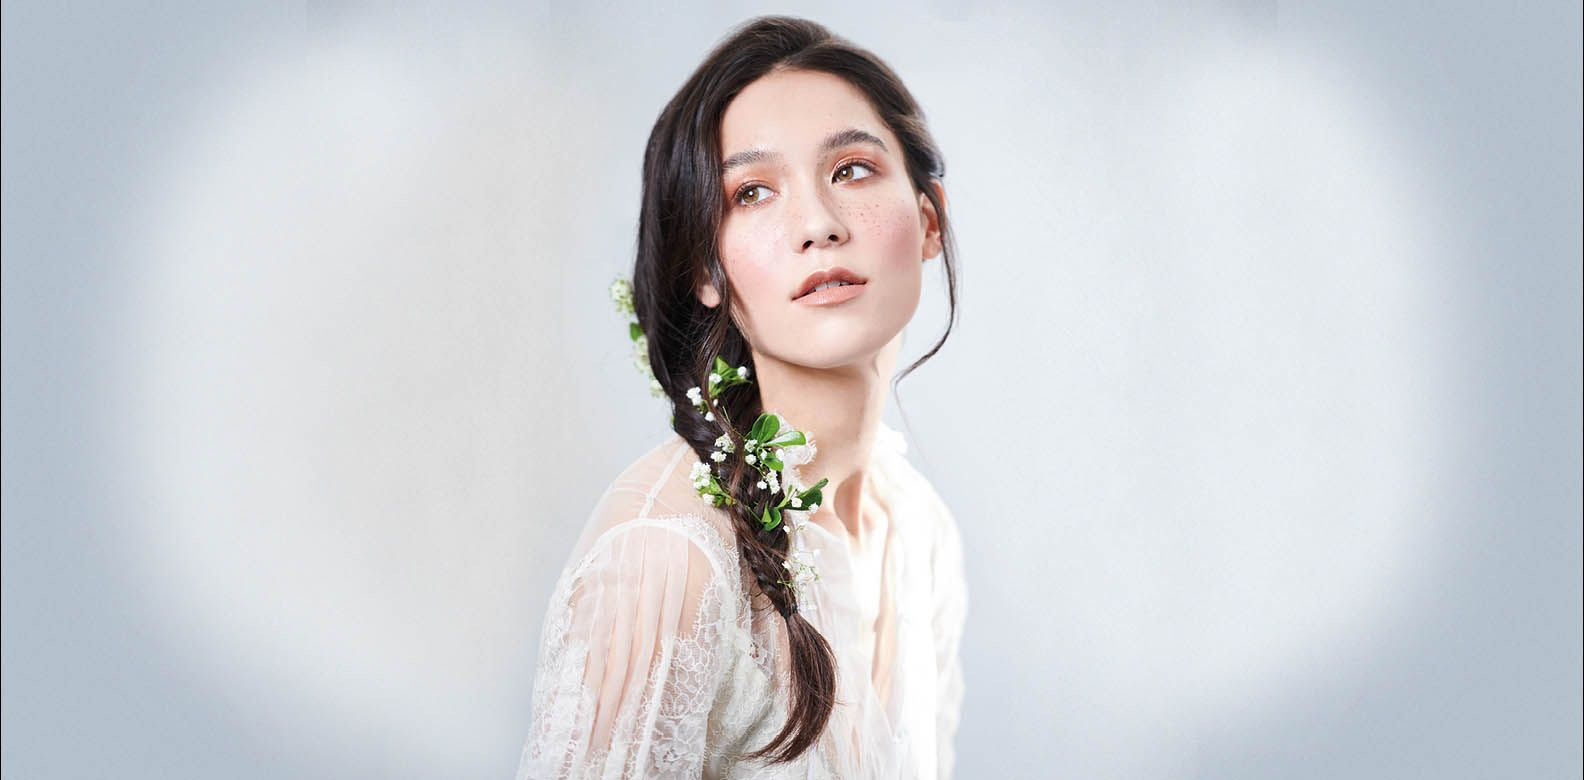 Styled: The Prettiest Wedding Hairstyles For Your Big Day